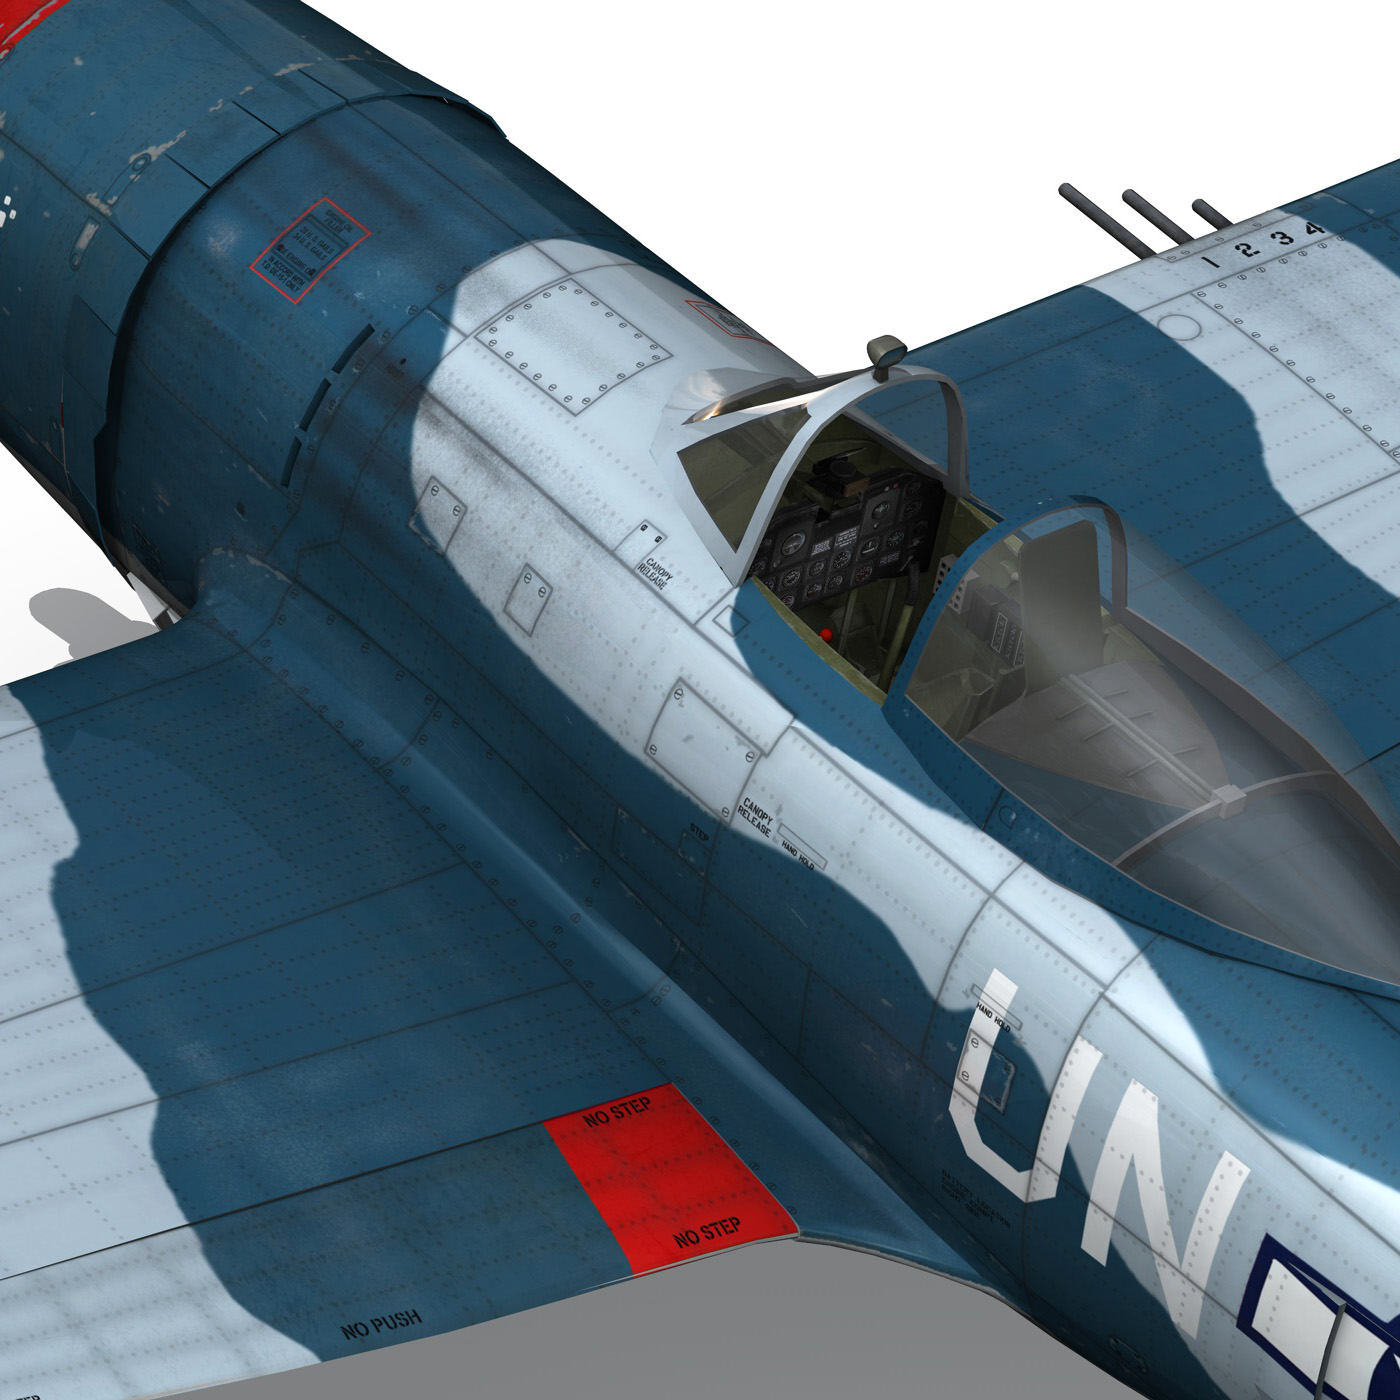 republic p-47 thunderbolt – ole miss lib 3d model fbx c4d lwo obj 274288